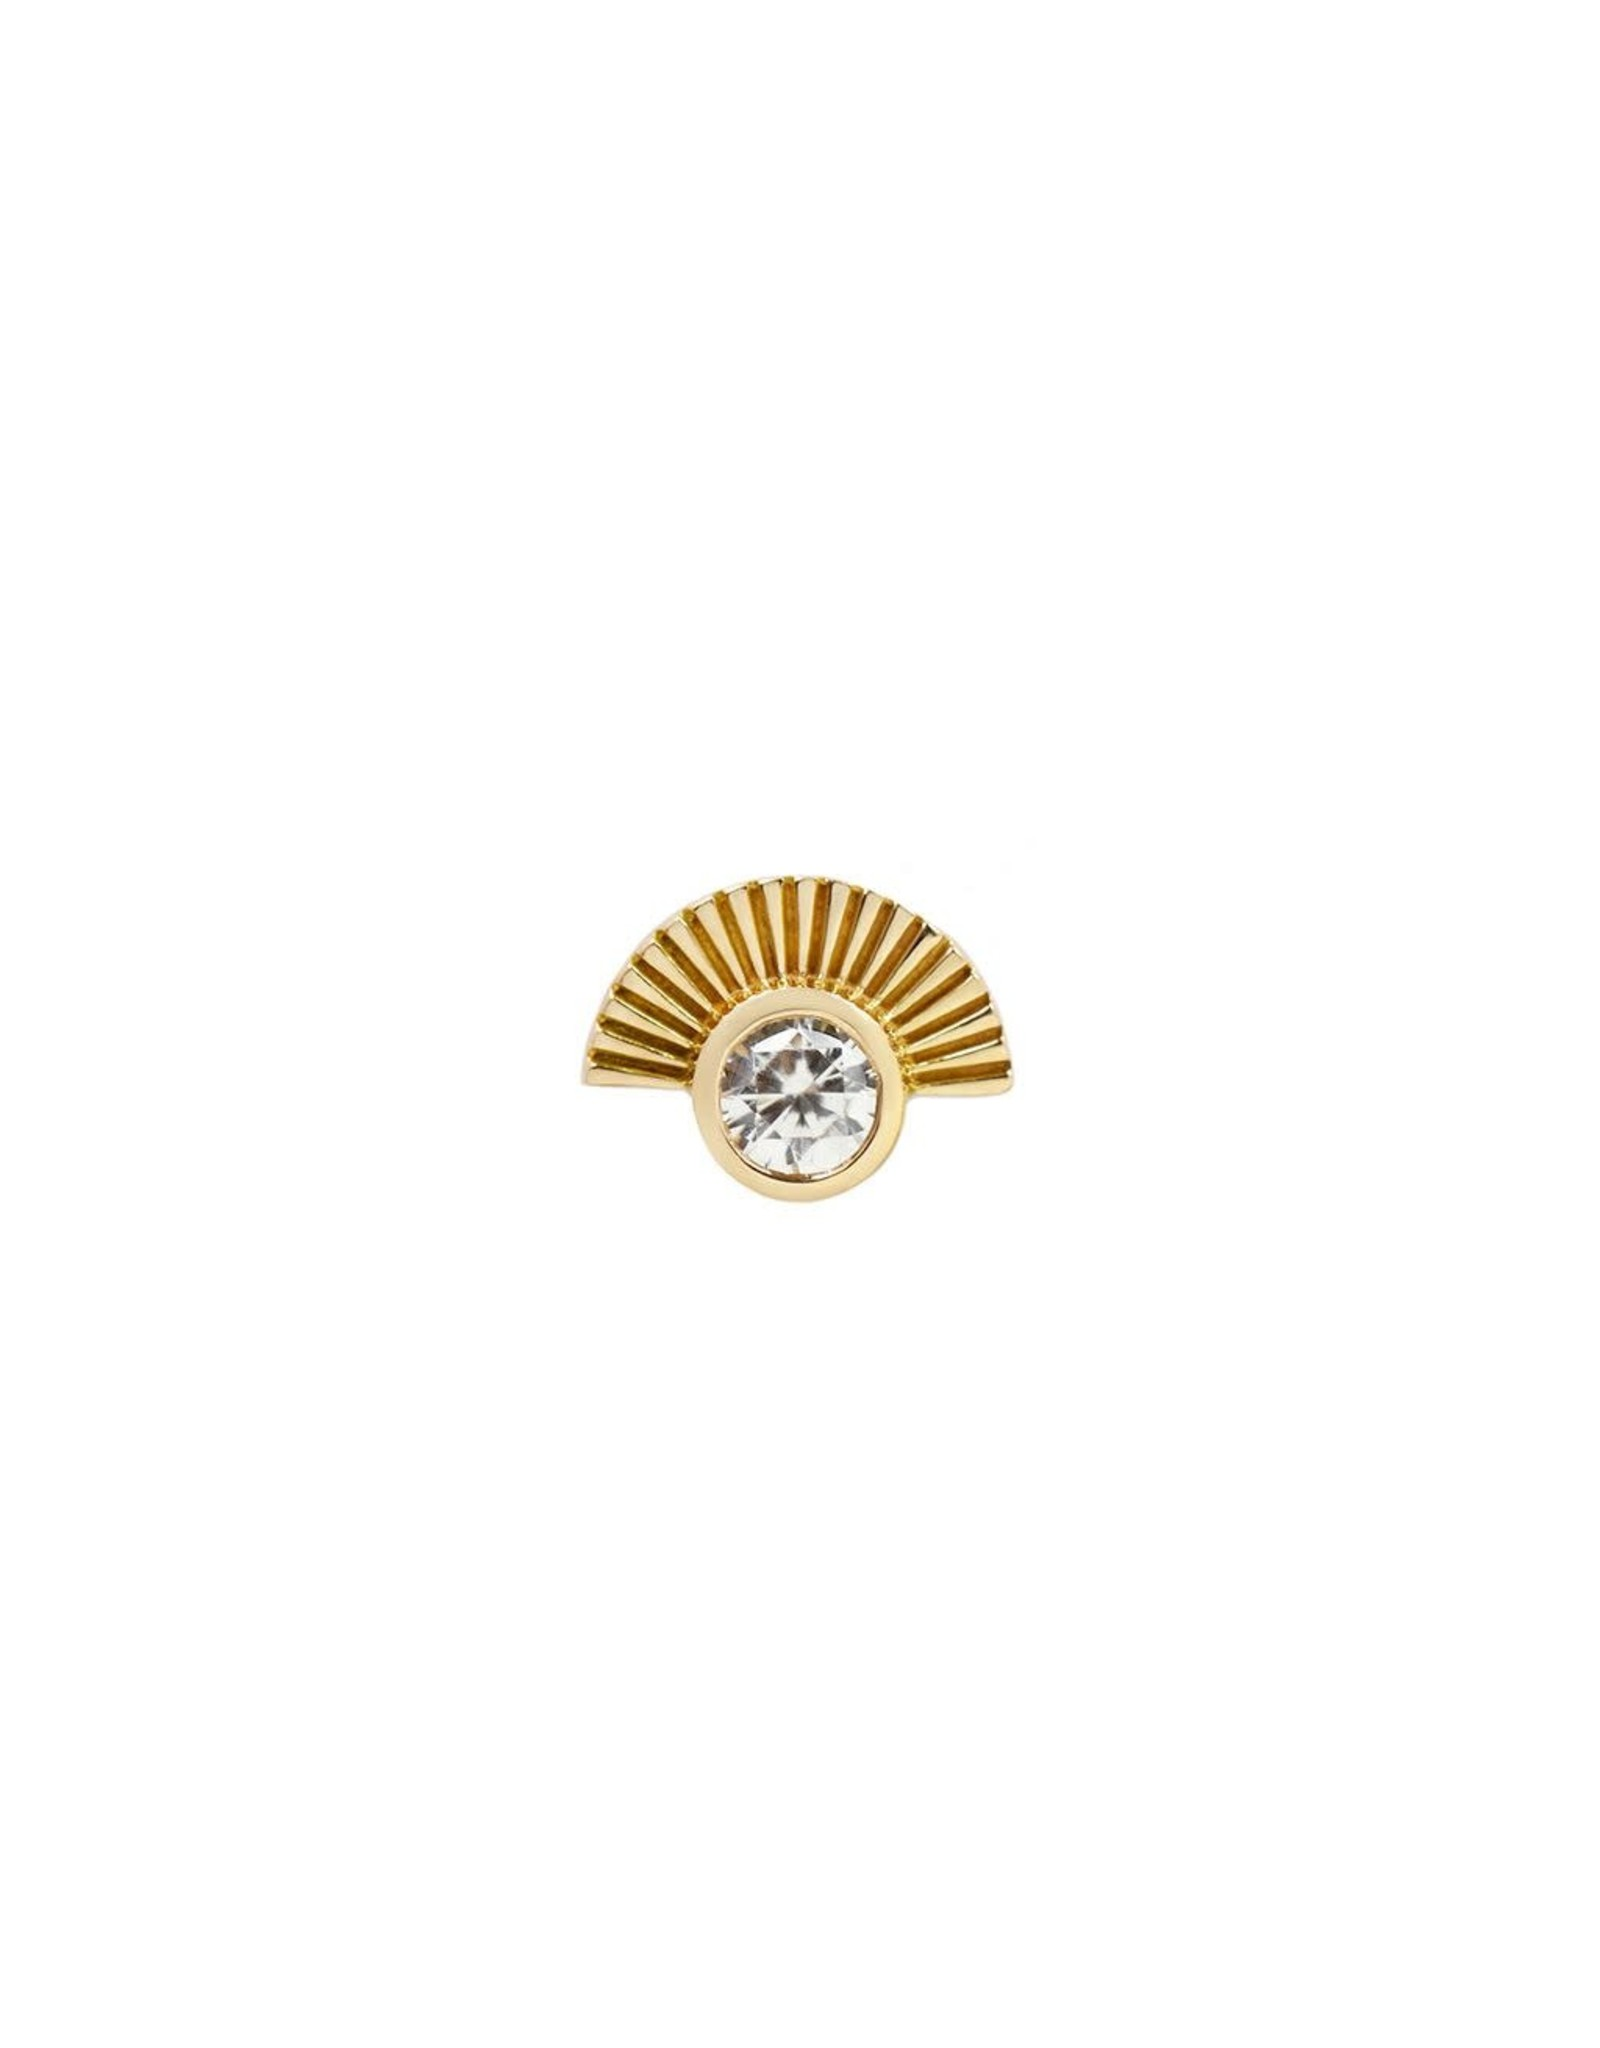 """Buddha Jewelry Organics Buddha Jewelry Organics gold """"Kahlo"""" press fit end with CZ"""